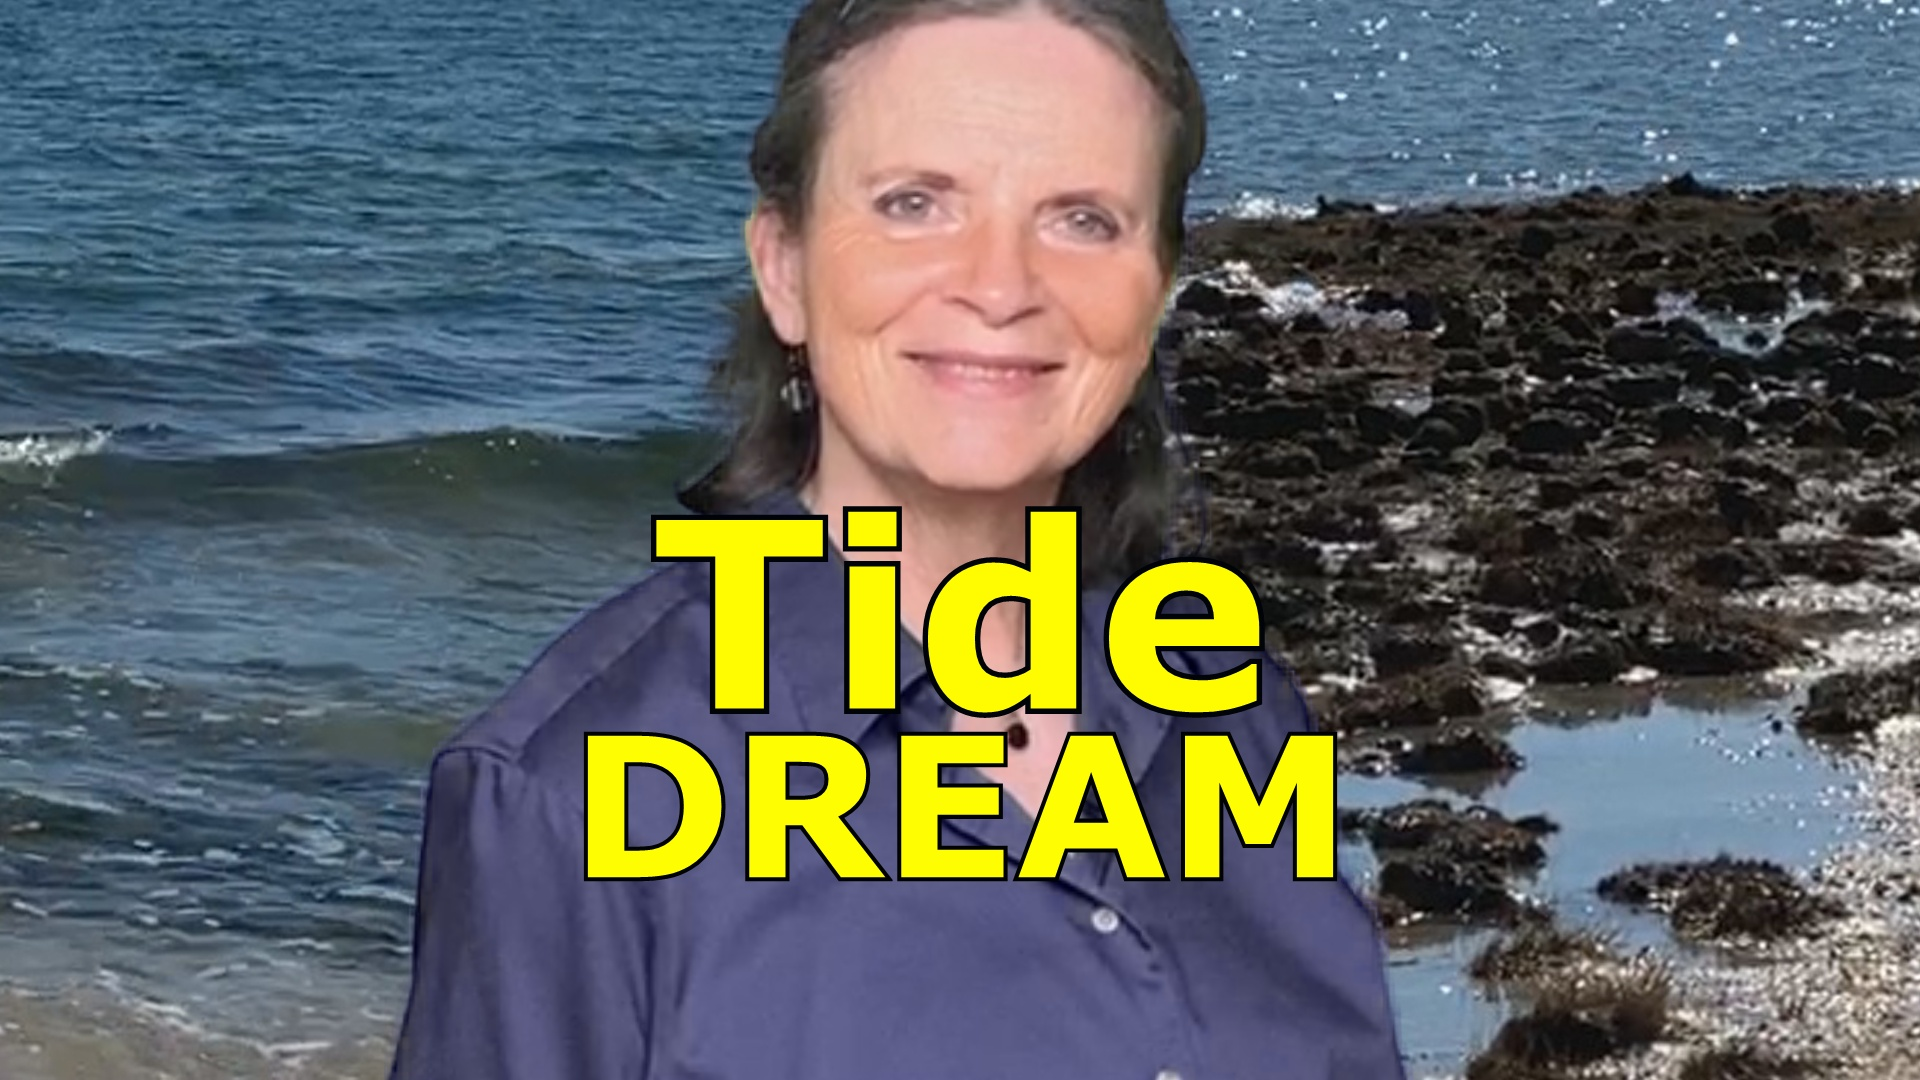 high tide dream meaning